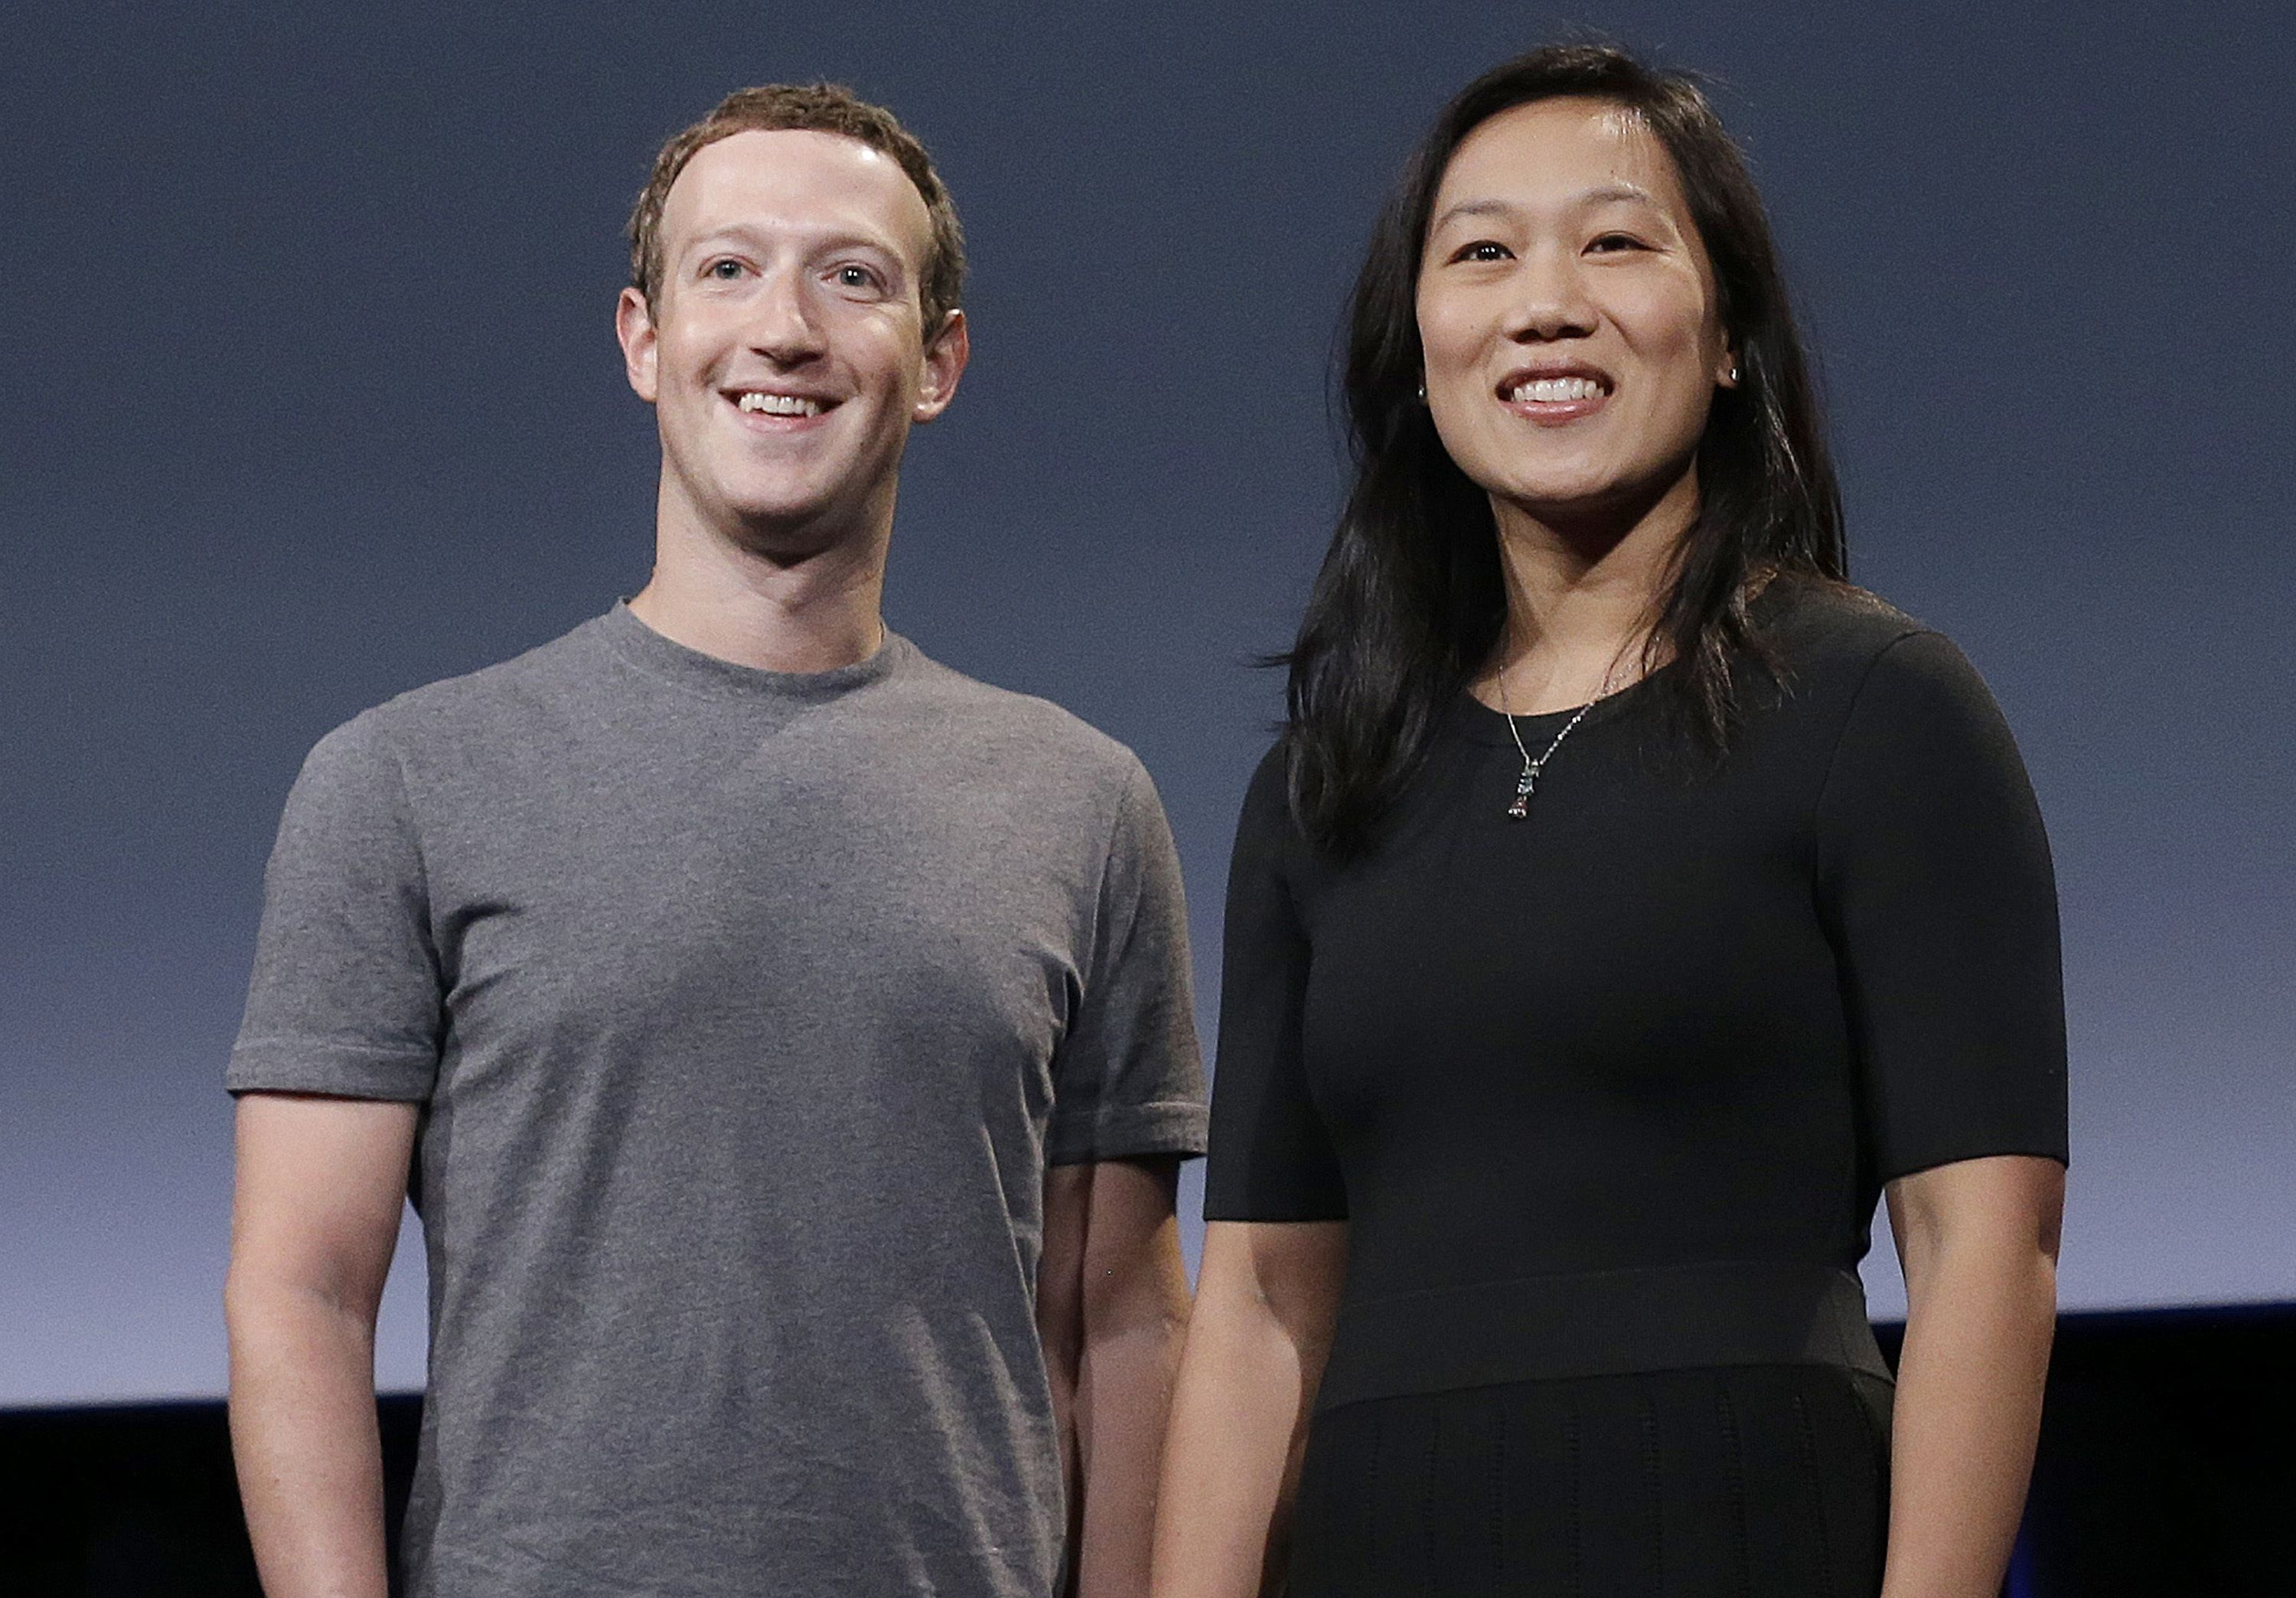 In this Tuesday photo, Facebook CEO Mark Zuckerberg and his wife, Priscilla Chan, smile as they prepare for a speech in San Francisco. Zuckerberg and Chan have a new lofty goal: to cure, manage or eradicate all disease by the end of this century. To this end, the Chan Zuckerberg Initiative, the couple's philanthropic organization, is committing significant financial resources over the next decade to help accelerate basic science research. San Franciso, Calif., Sept. 20, 2016 | AP Photo/Jeff Chiu, St. George News